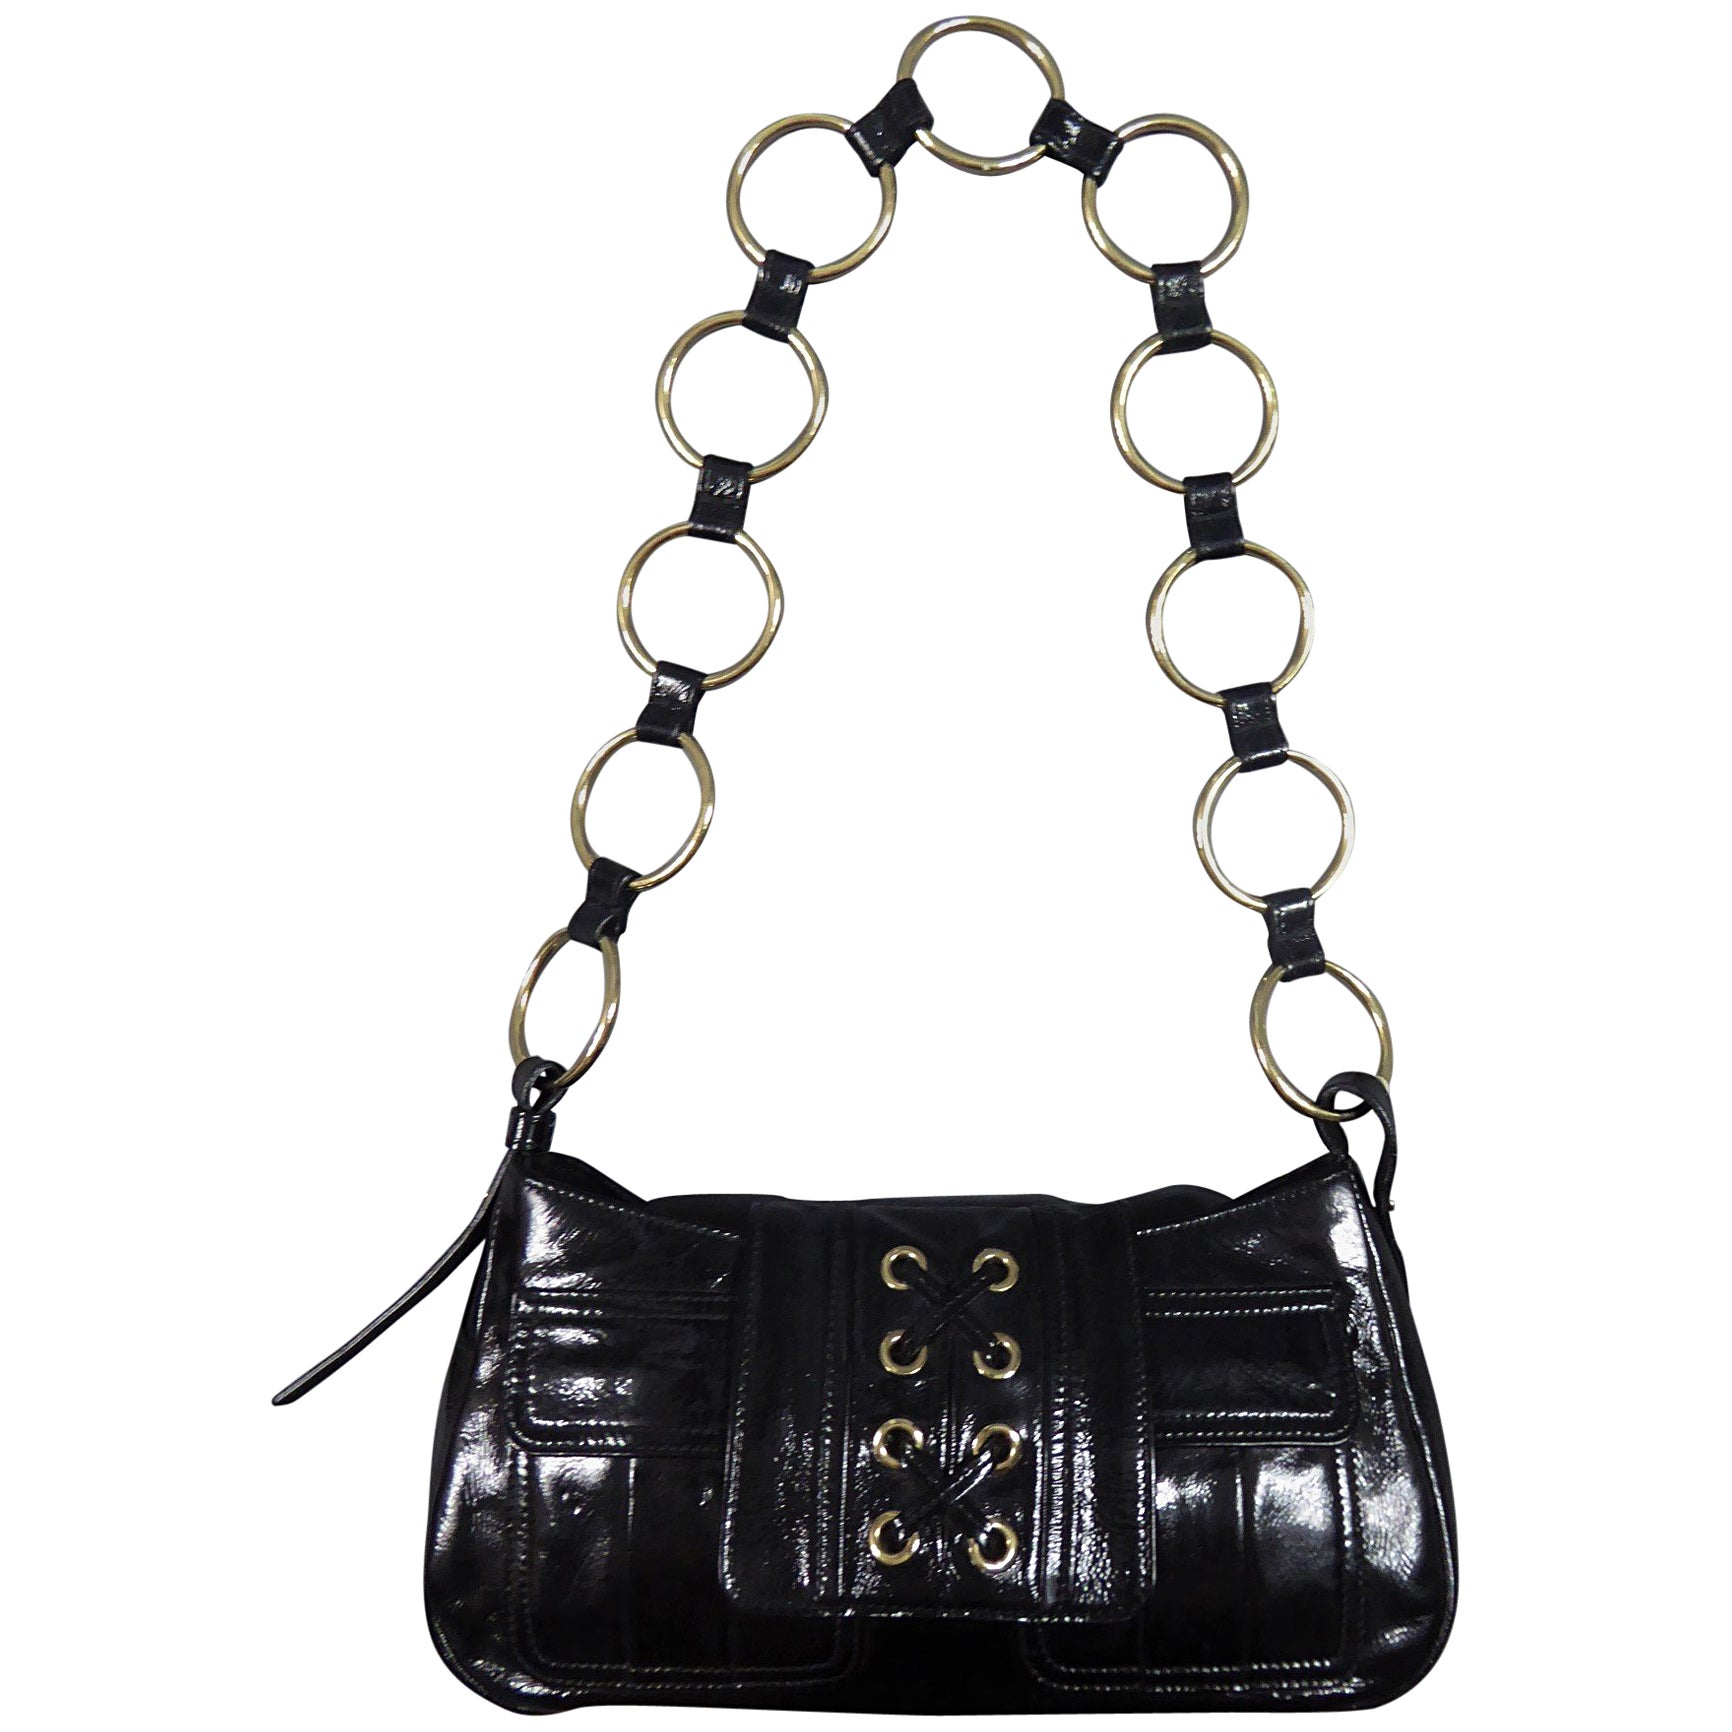 238380fe75 Yves Saint Laurent Rive Gauche Bag at 1stdibs